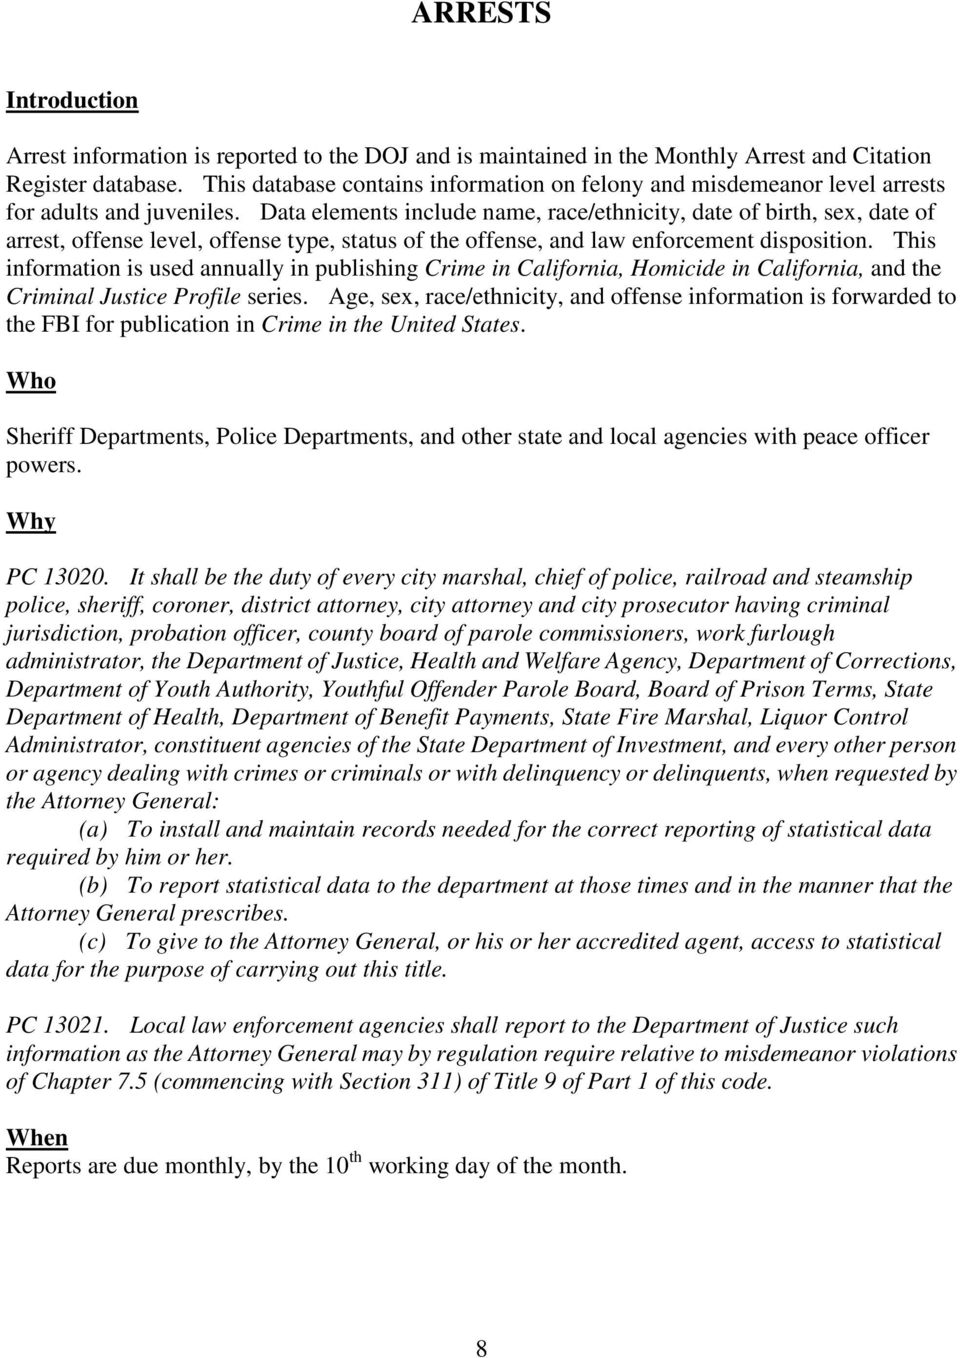 Data elements include name, race/ethnicity, date of birth, sex, date of arrest, offense level, offense type, status of the offense, and law enforcement disposition.